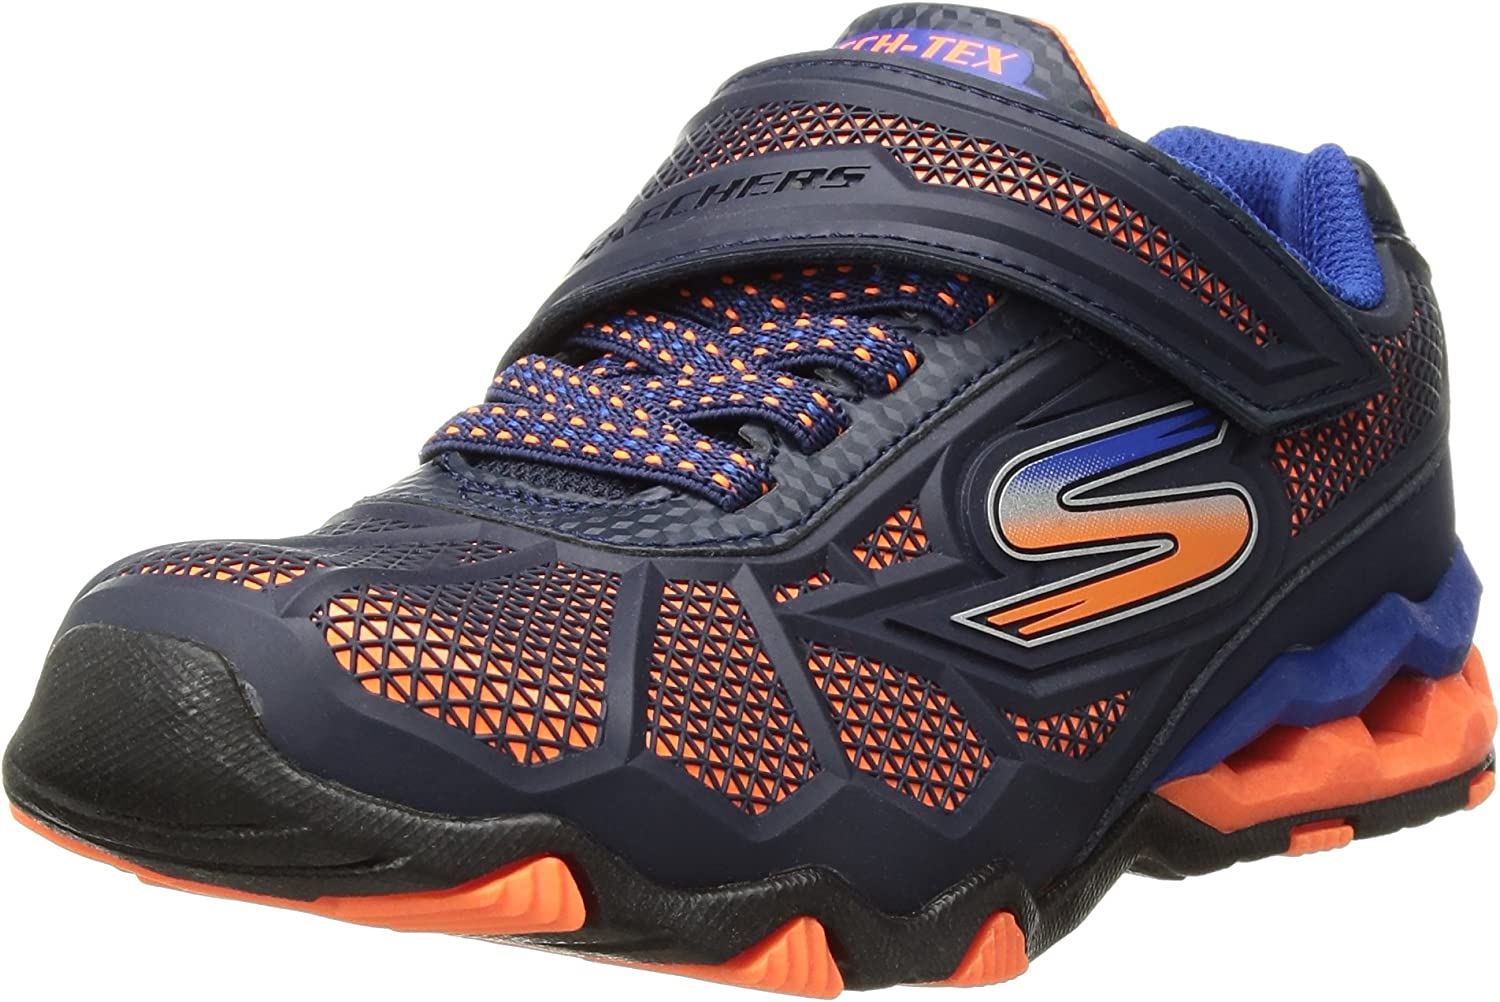 Skechers Kids Powered Erupters II Light Up Sneaker Pre//Grade School Size 1 Navy Blue